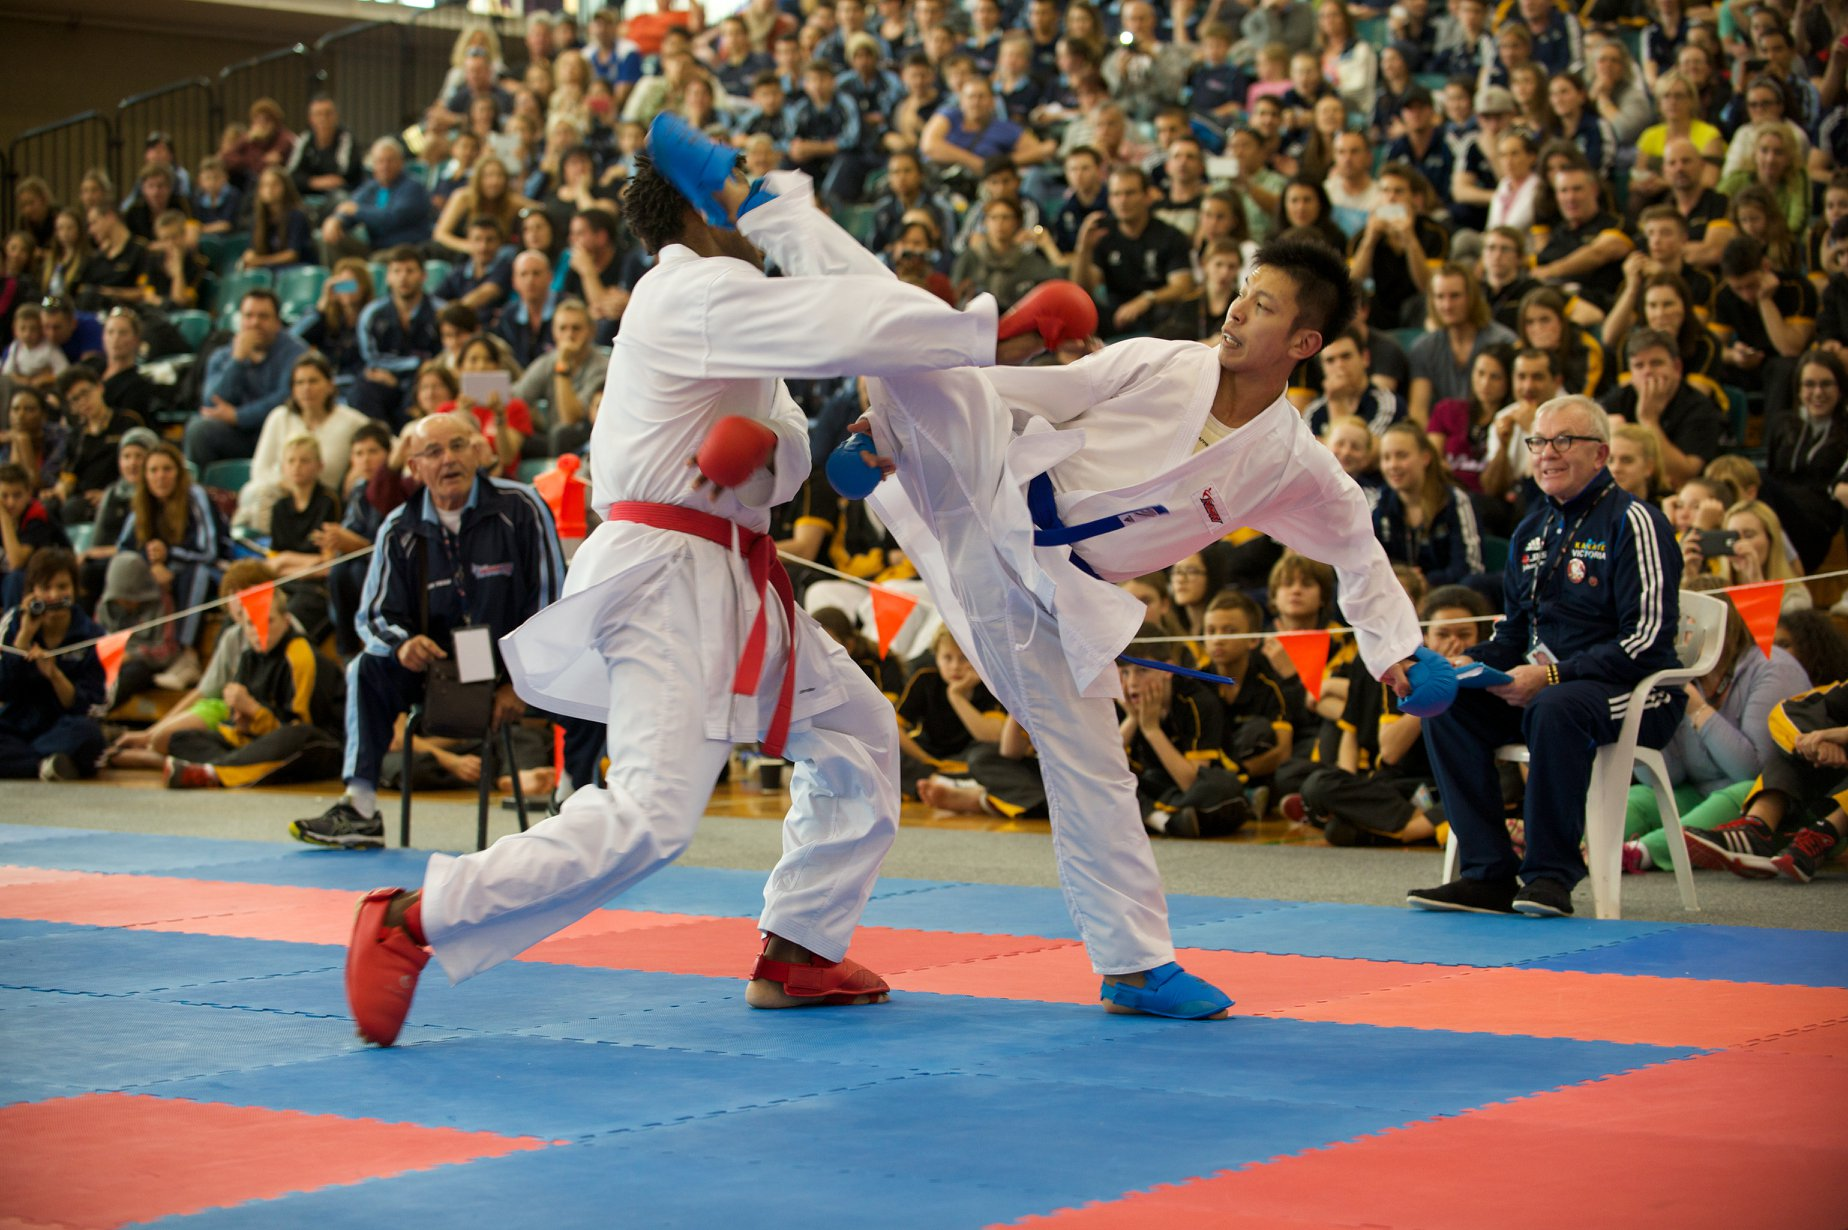 Karate talent shines at National Championships